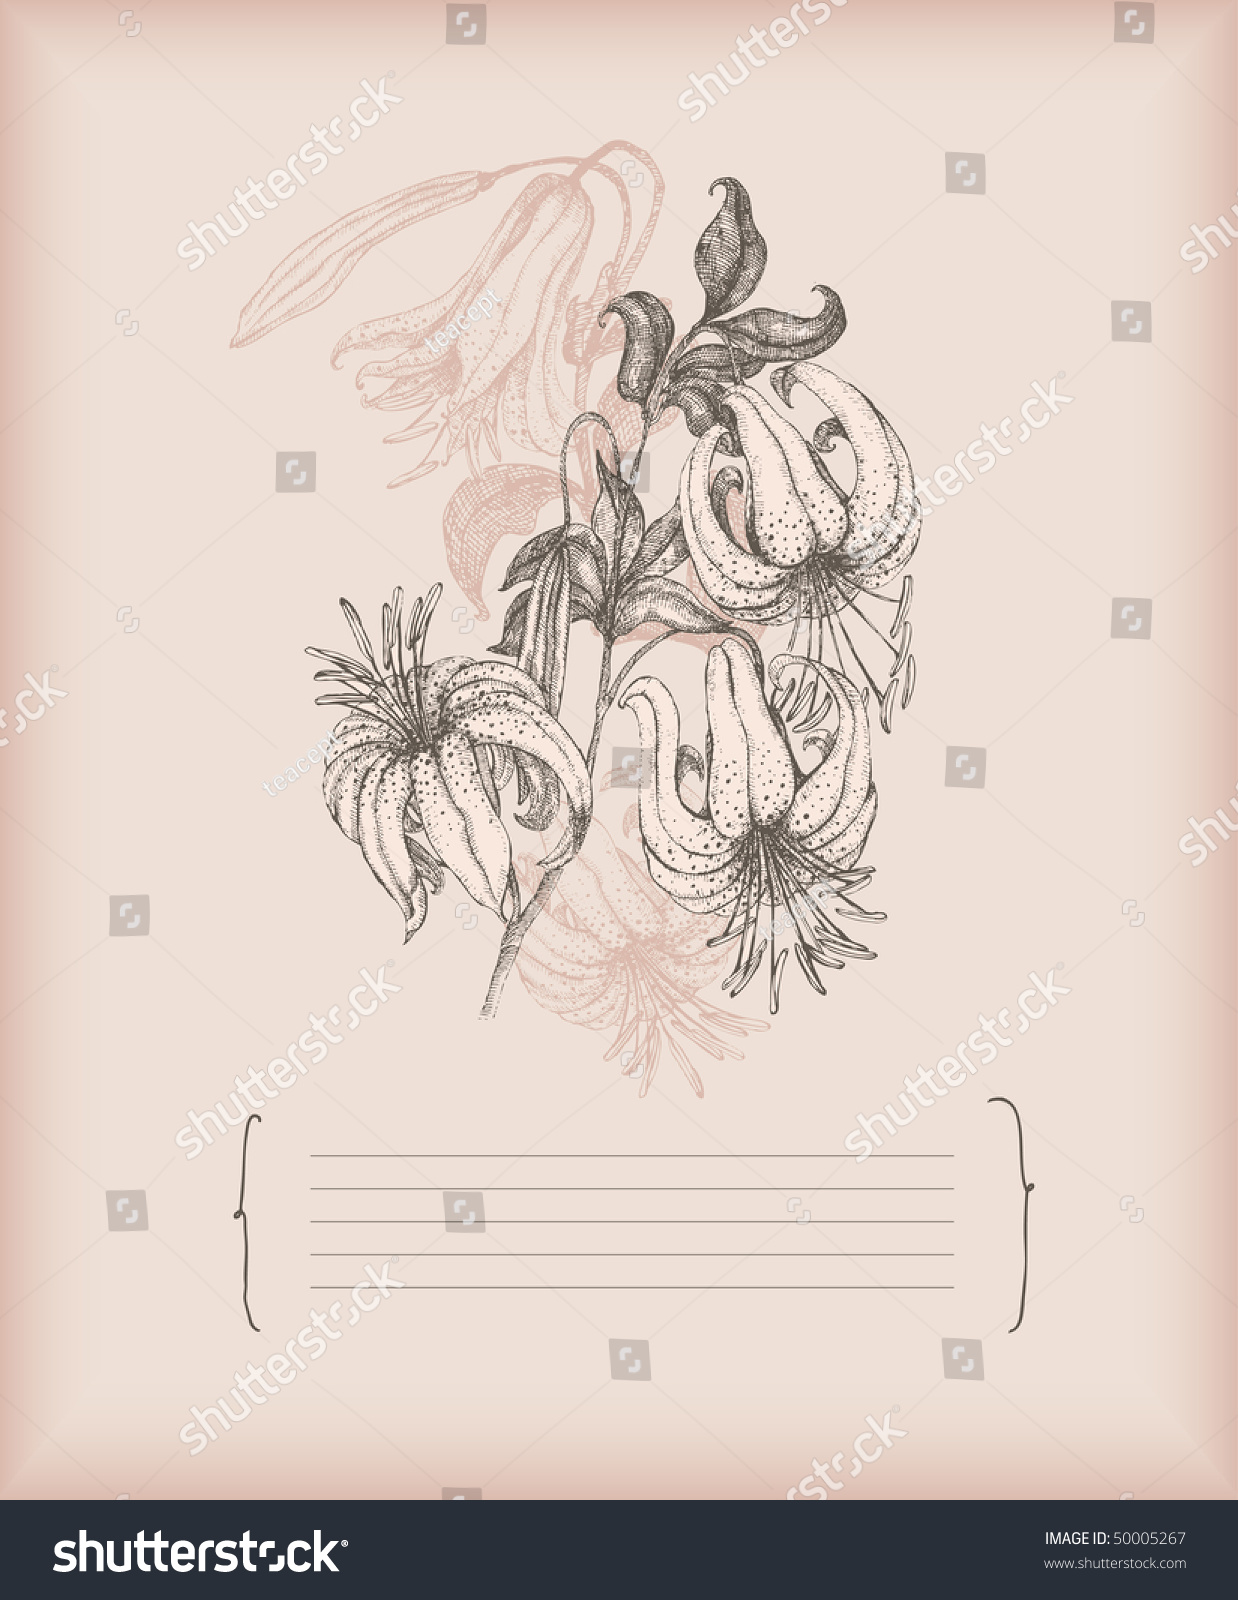 hight resolution of tiger lily drawing stock vector royalty free 50005267 shutterstock diagram of tiger lily